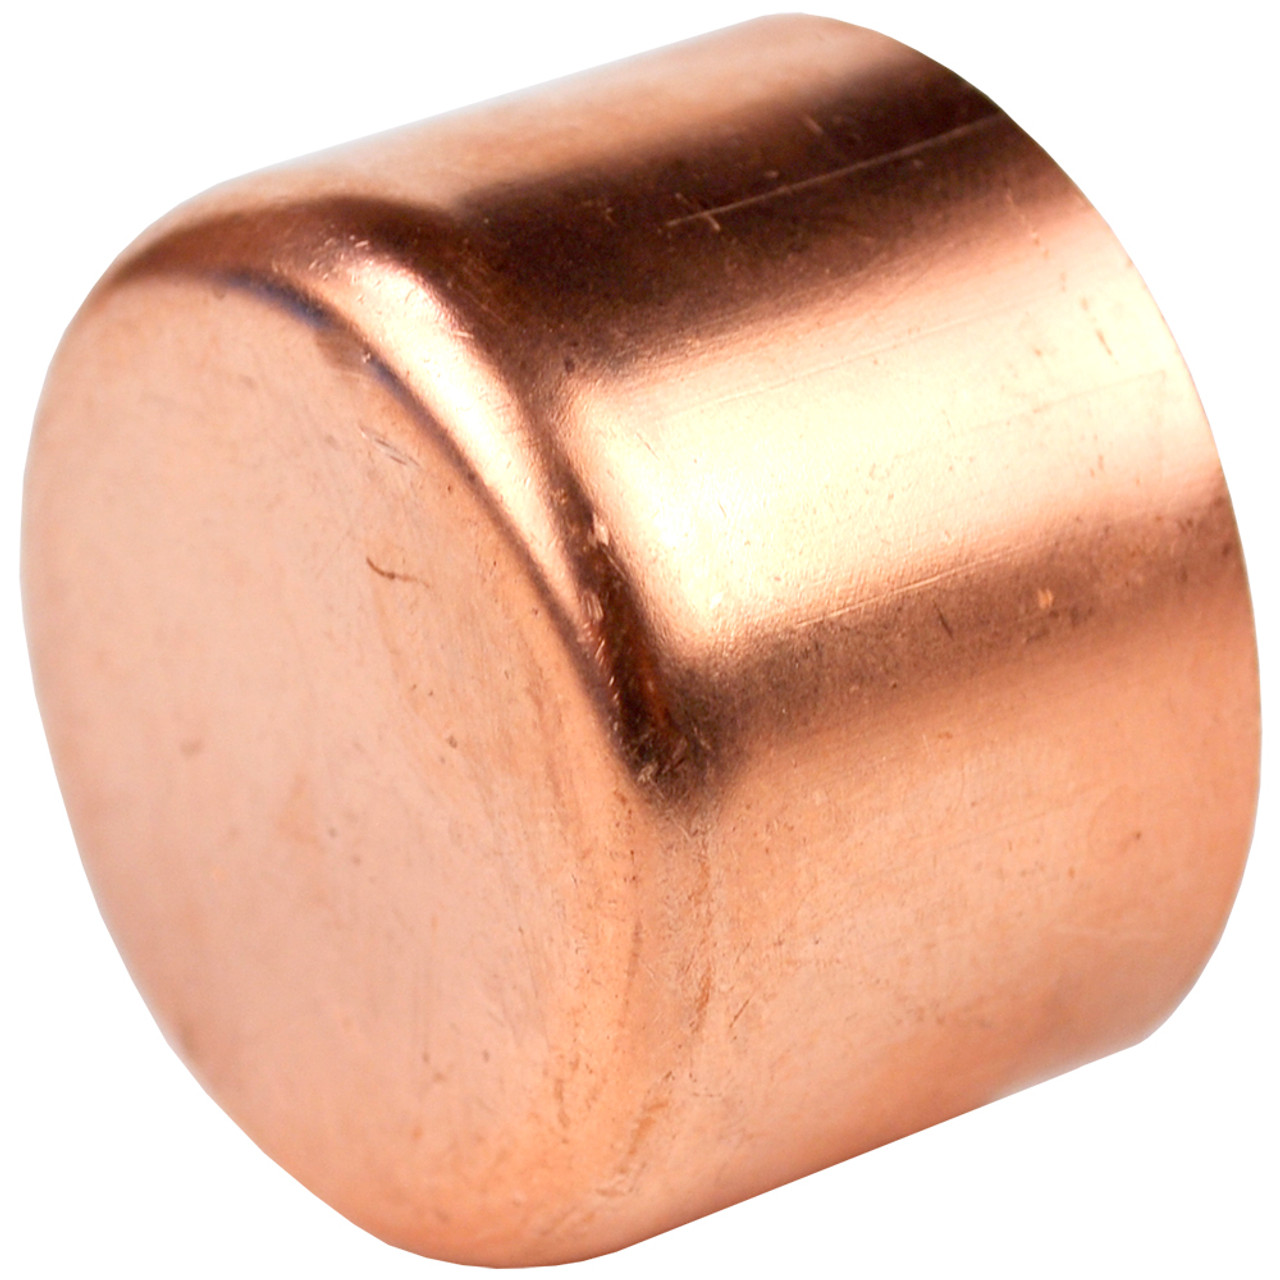 Next Day Delivery 22mm Copper End Feed Elbow Fittings Cheapest on